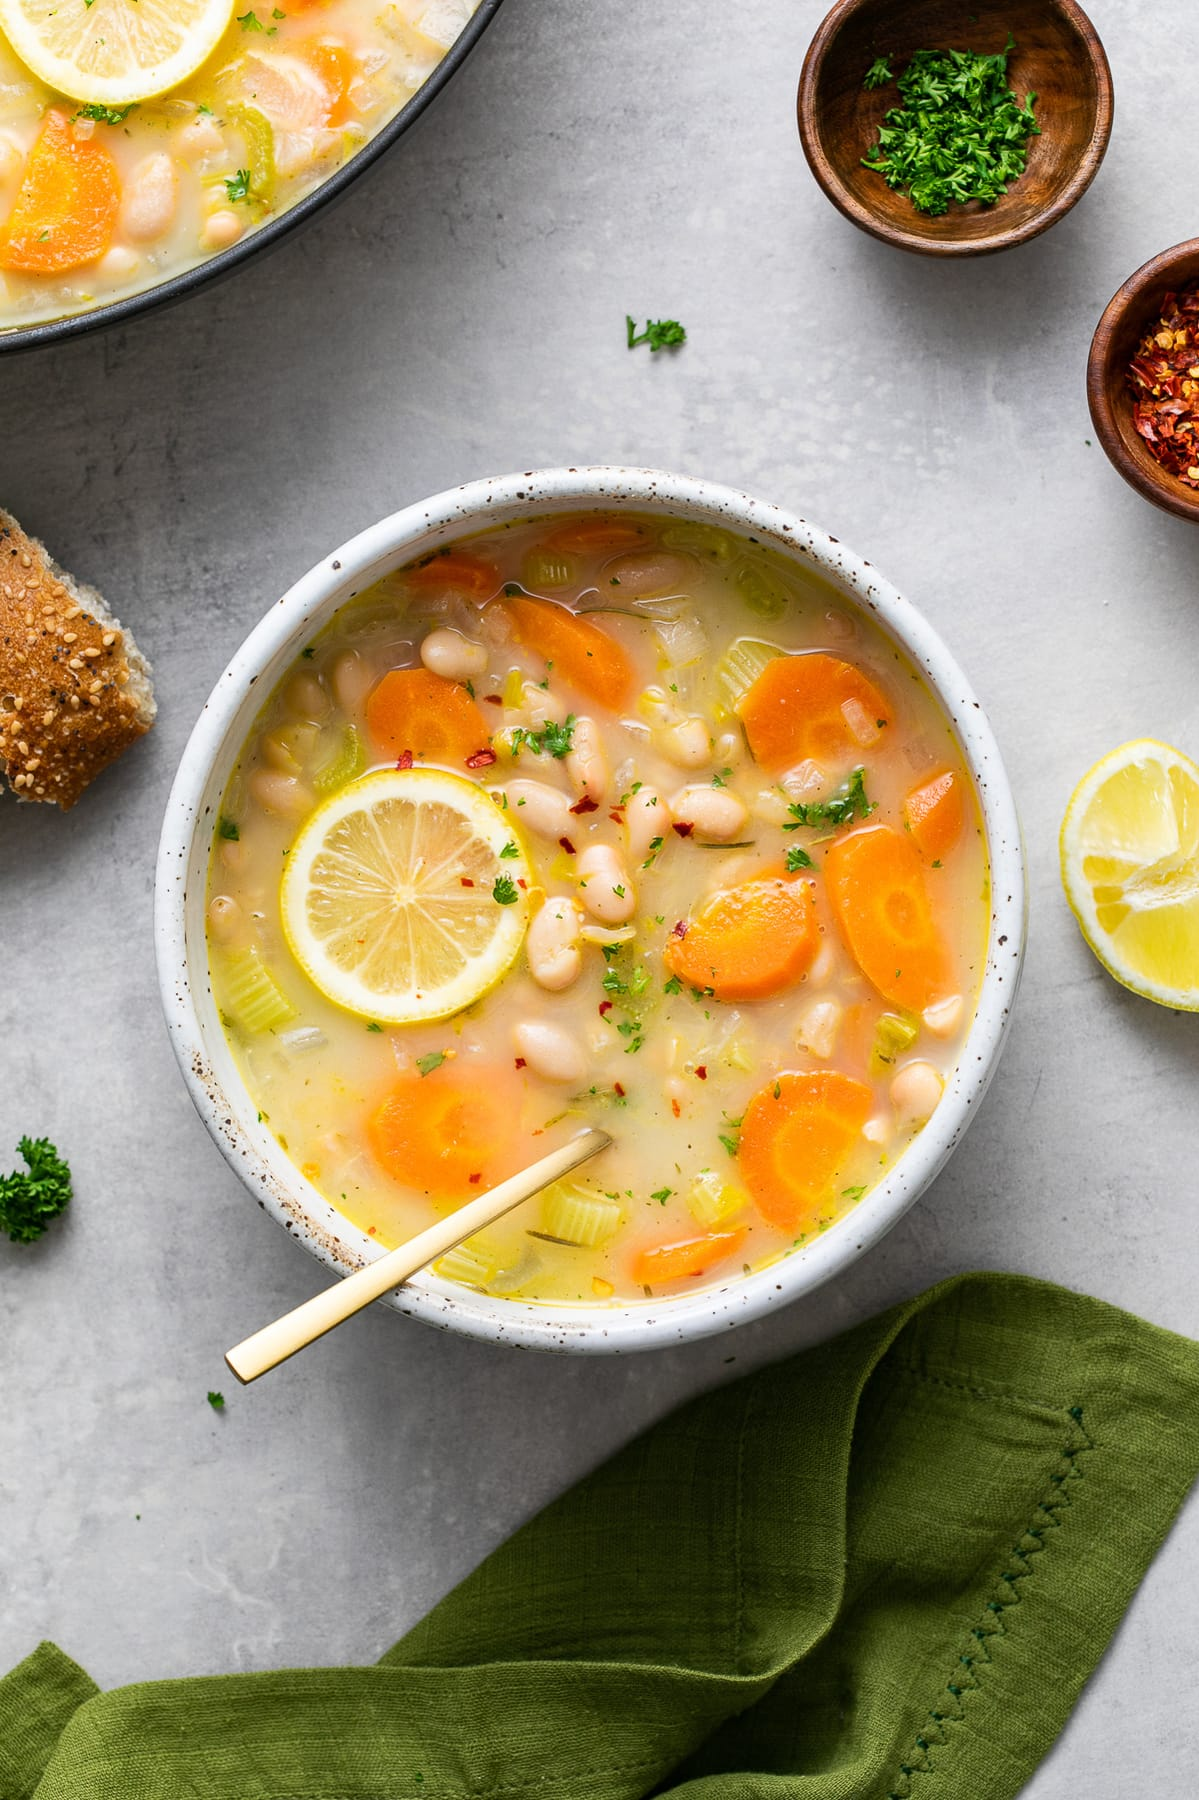 top down view of bowl with serving of lemon white bean soup with spoon and items surrounding.